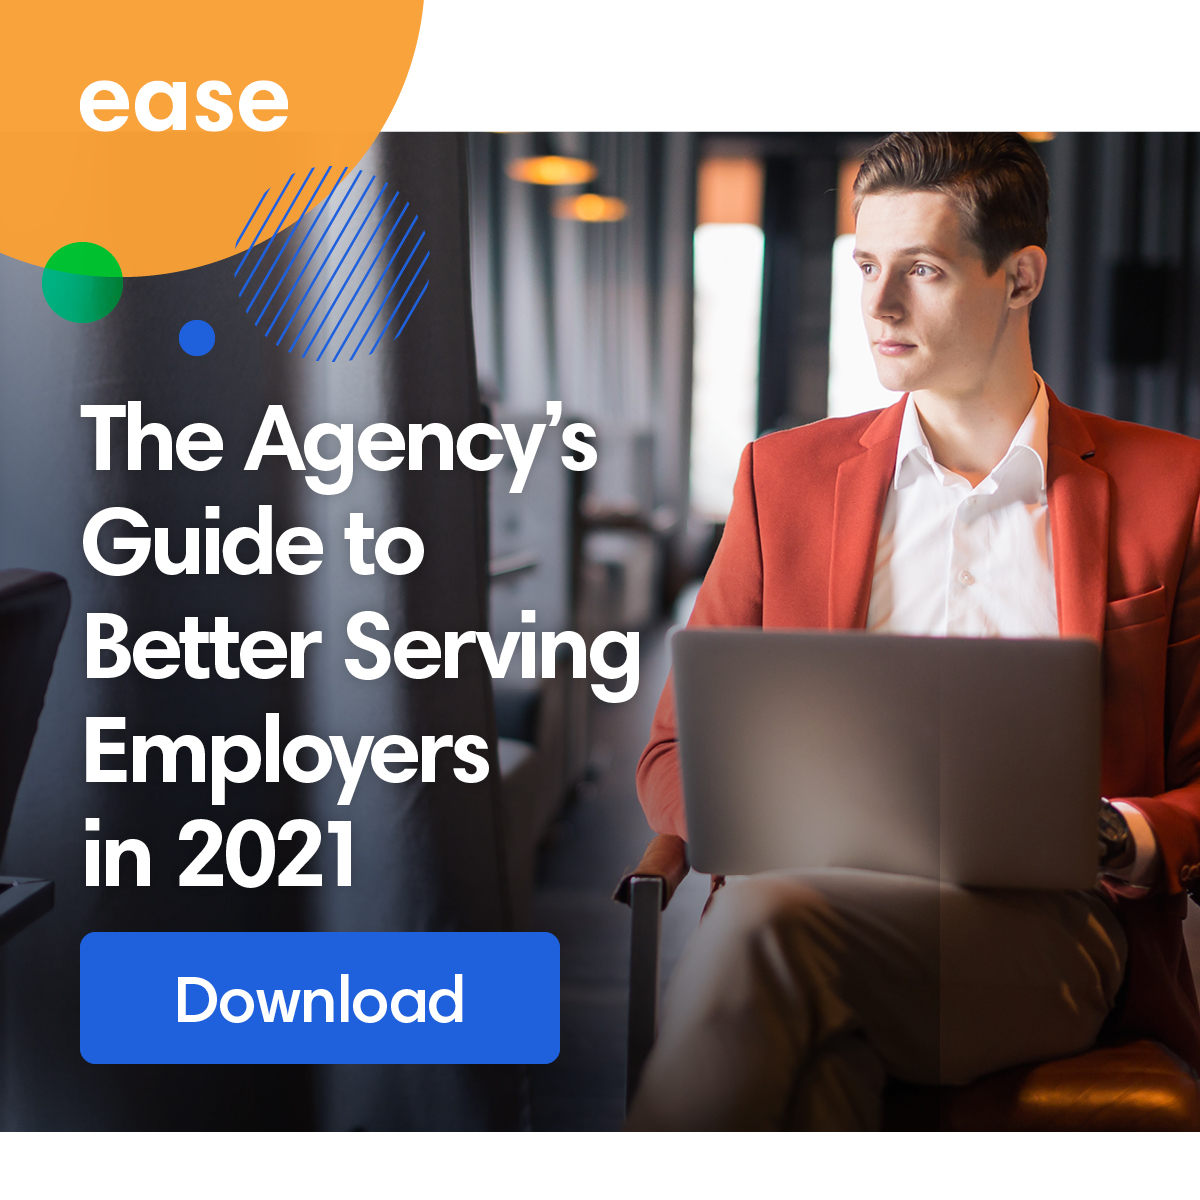 agency guide to better serving employers download widget